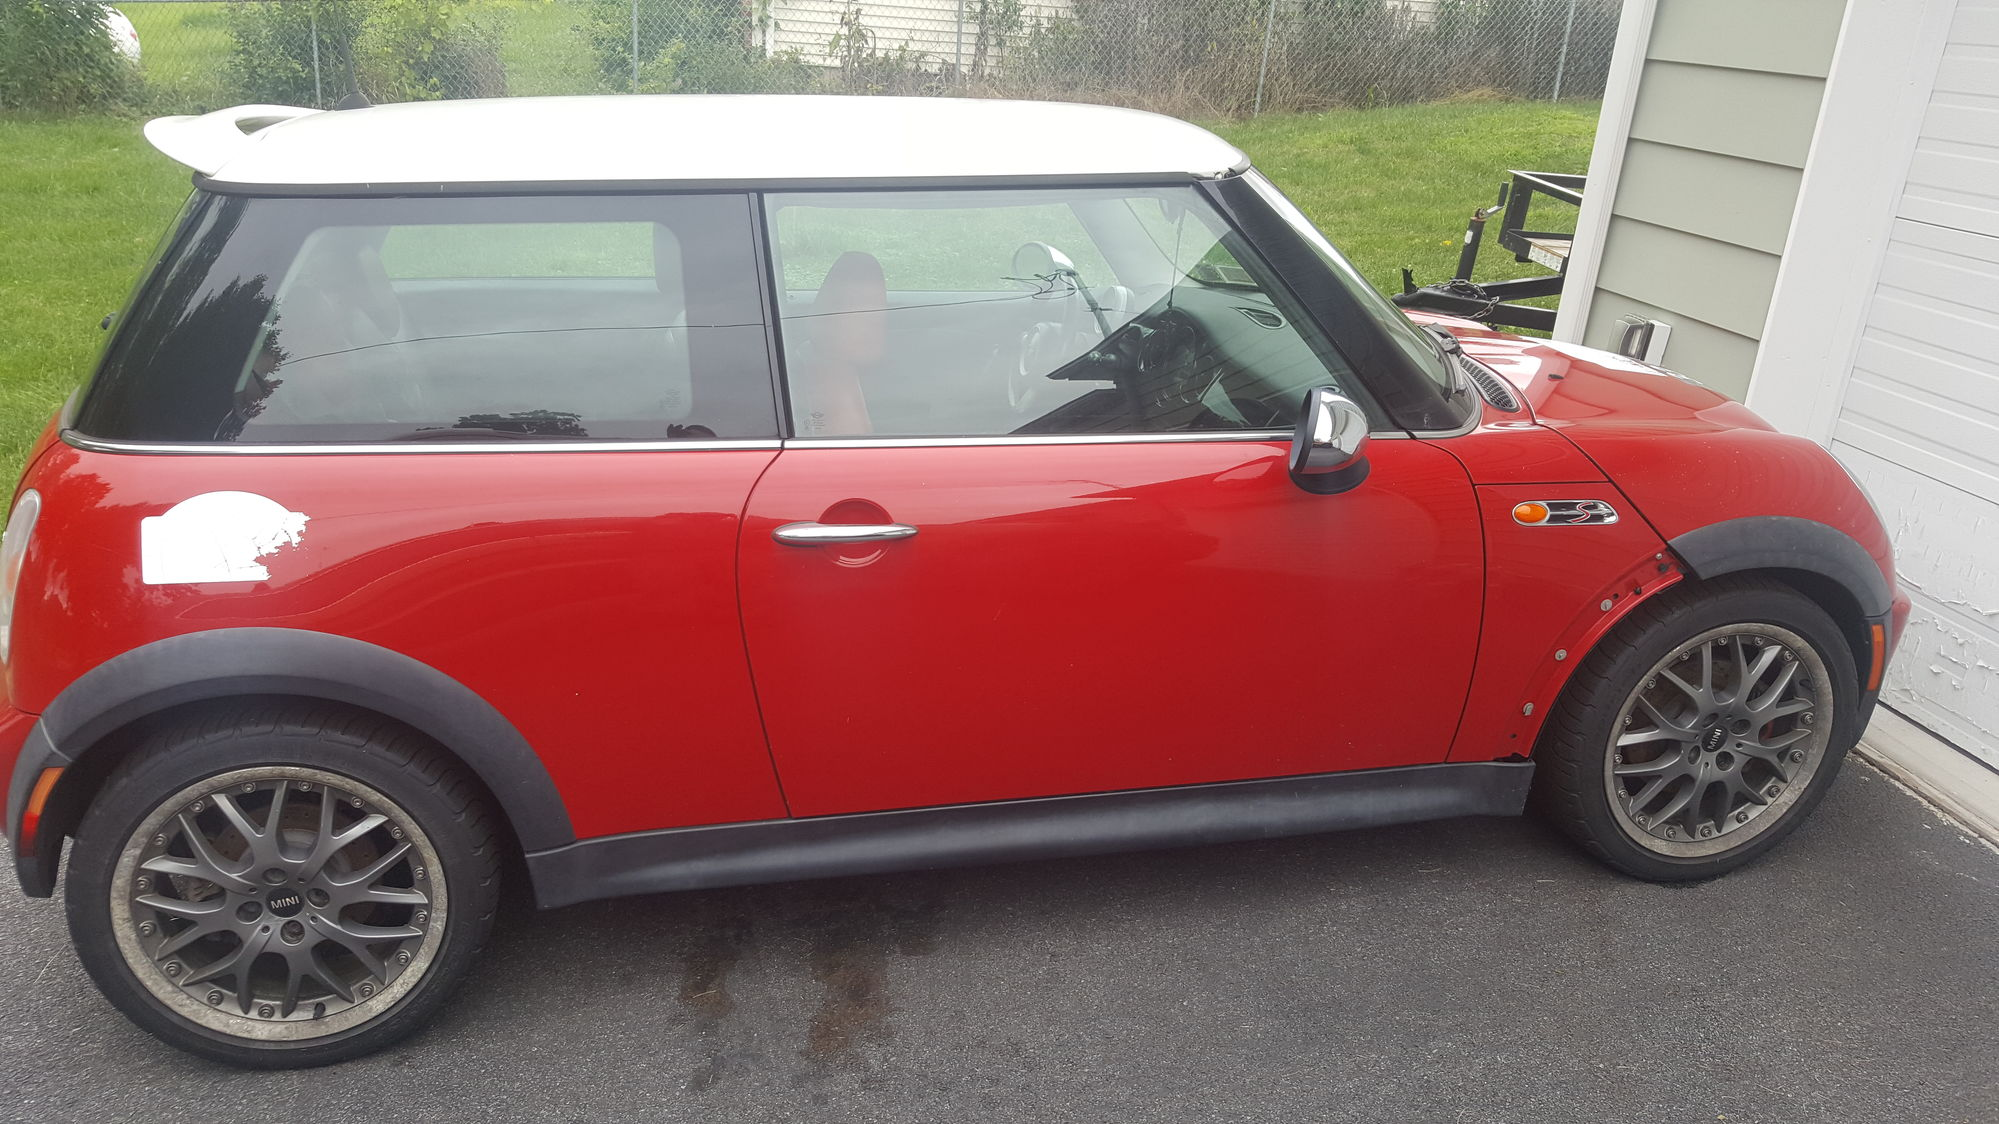 I Have All The Trim It Just Needs To Be Put Back On Year 2004 Make Mini Model Cooper S Mc40 Price 3500 Mileage 145 000 Color Chili Red